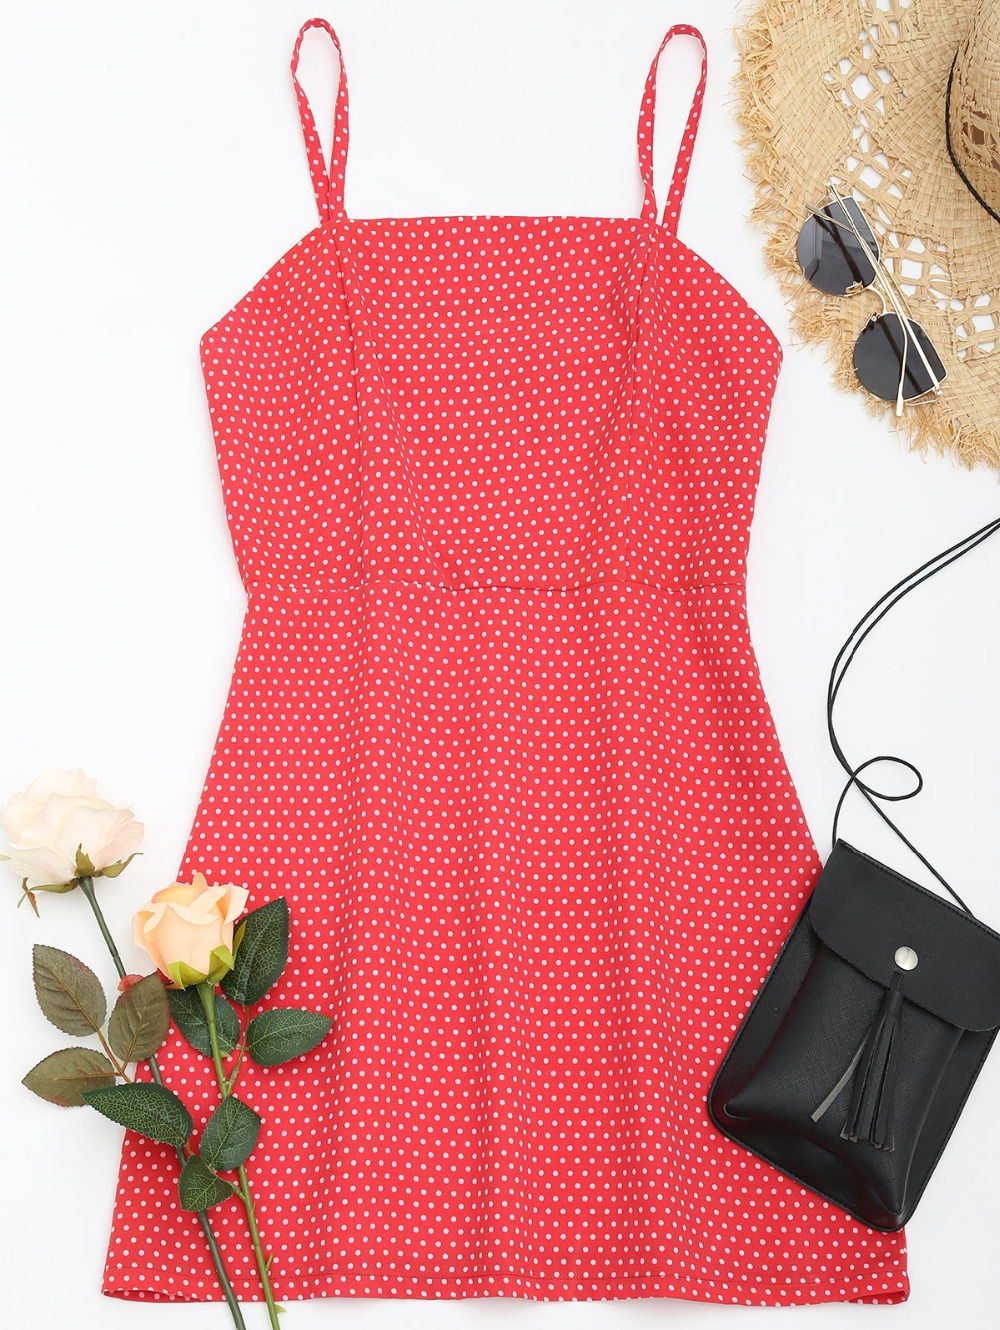 AZULINA Polka Dot Spaghetti Strap Summer Cami Dress Women Casual Brief A Line Red Mini Dress Vestidos De Festa Ladies Sundress 7